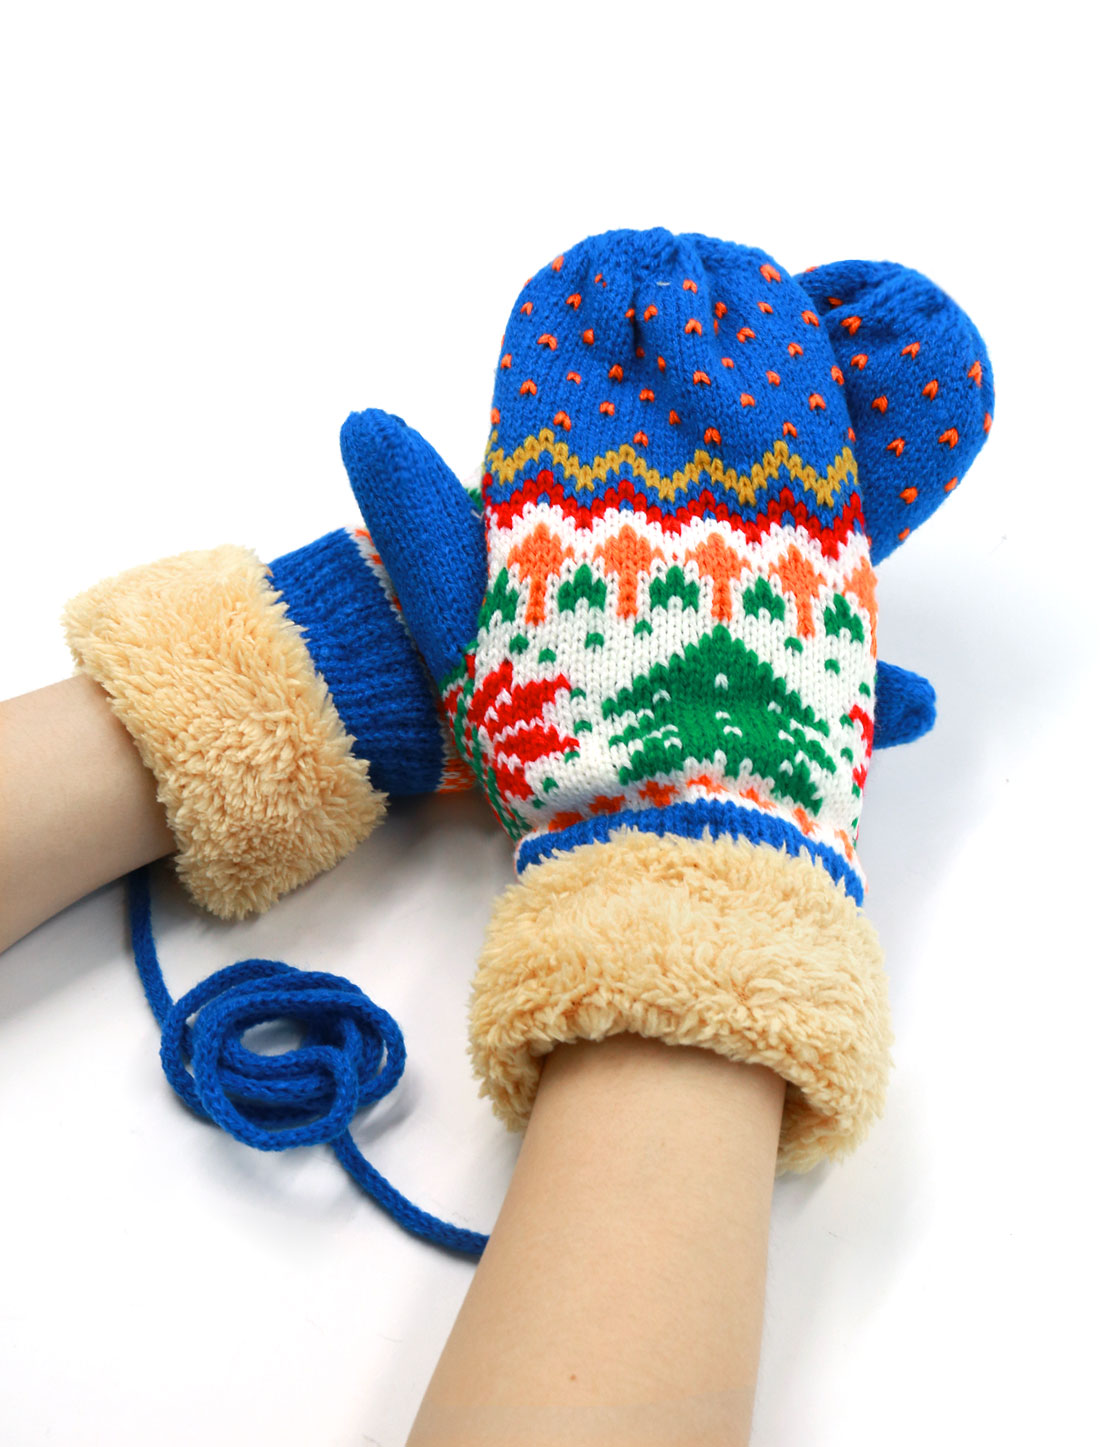 Ladies Knitted Christmas Tree Pattern Casual String Mitten Gloves Pair Blue